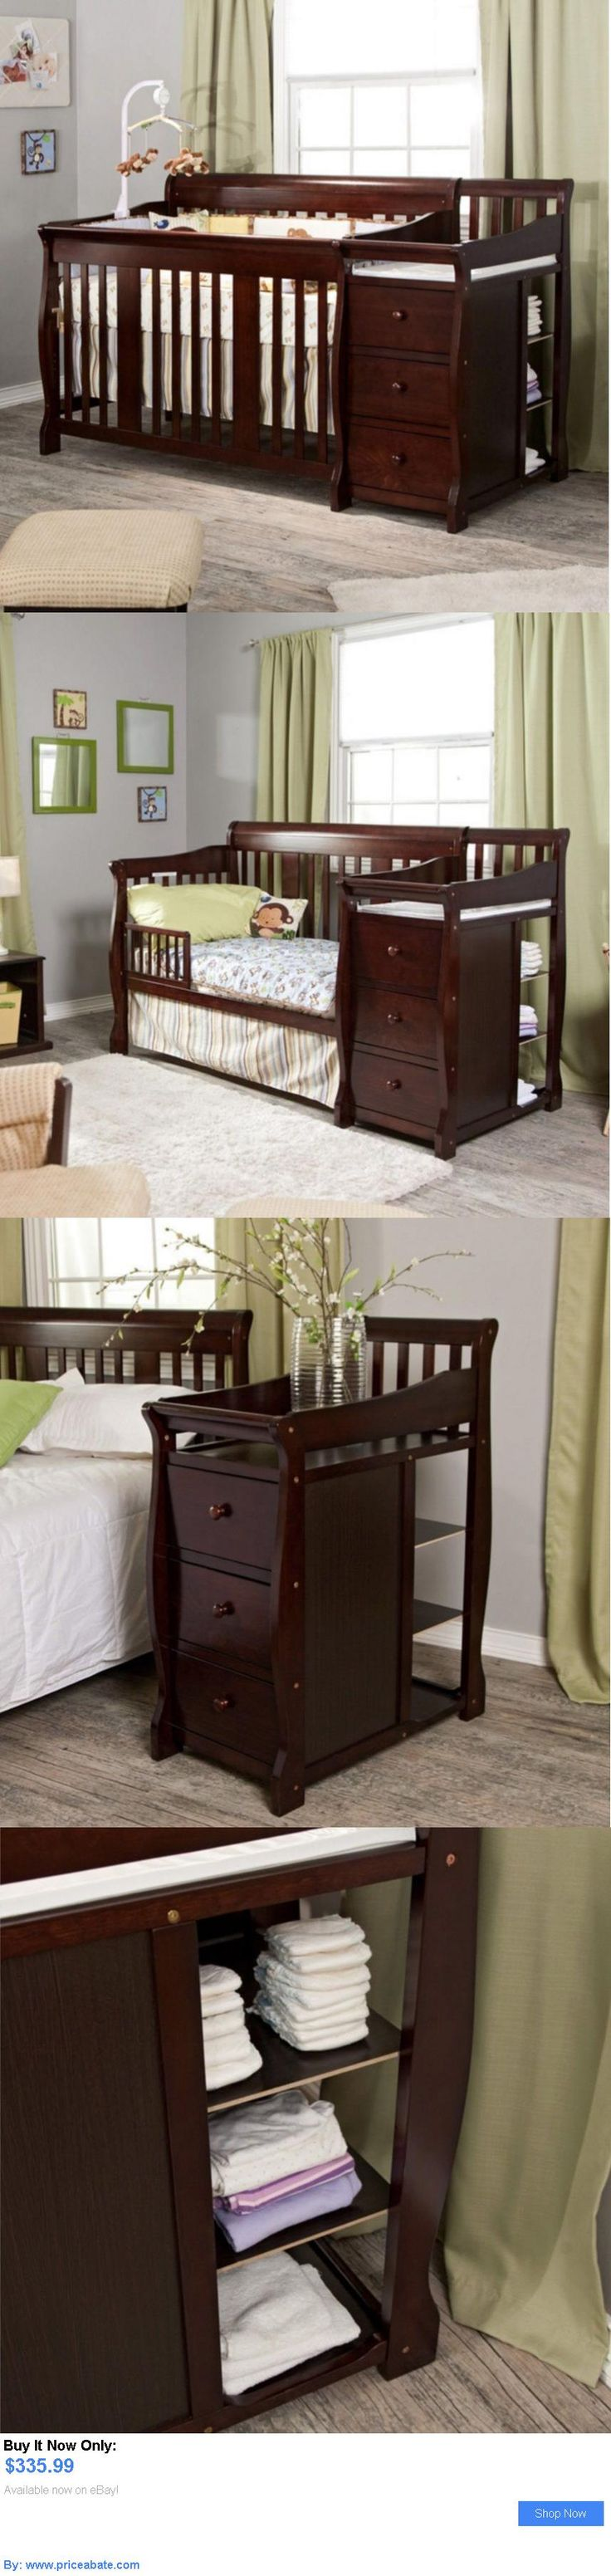 Baby Nursery: Convertible Baby Crib 4 In 1 With Changing Table Espresso Fixed Side Toddler BUY IT NOW ONLY: $335.99 #priceabateBabyNursery OR #priceabate